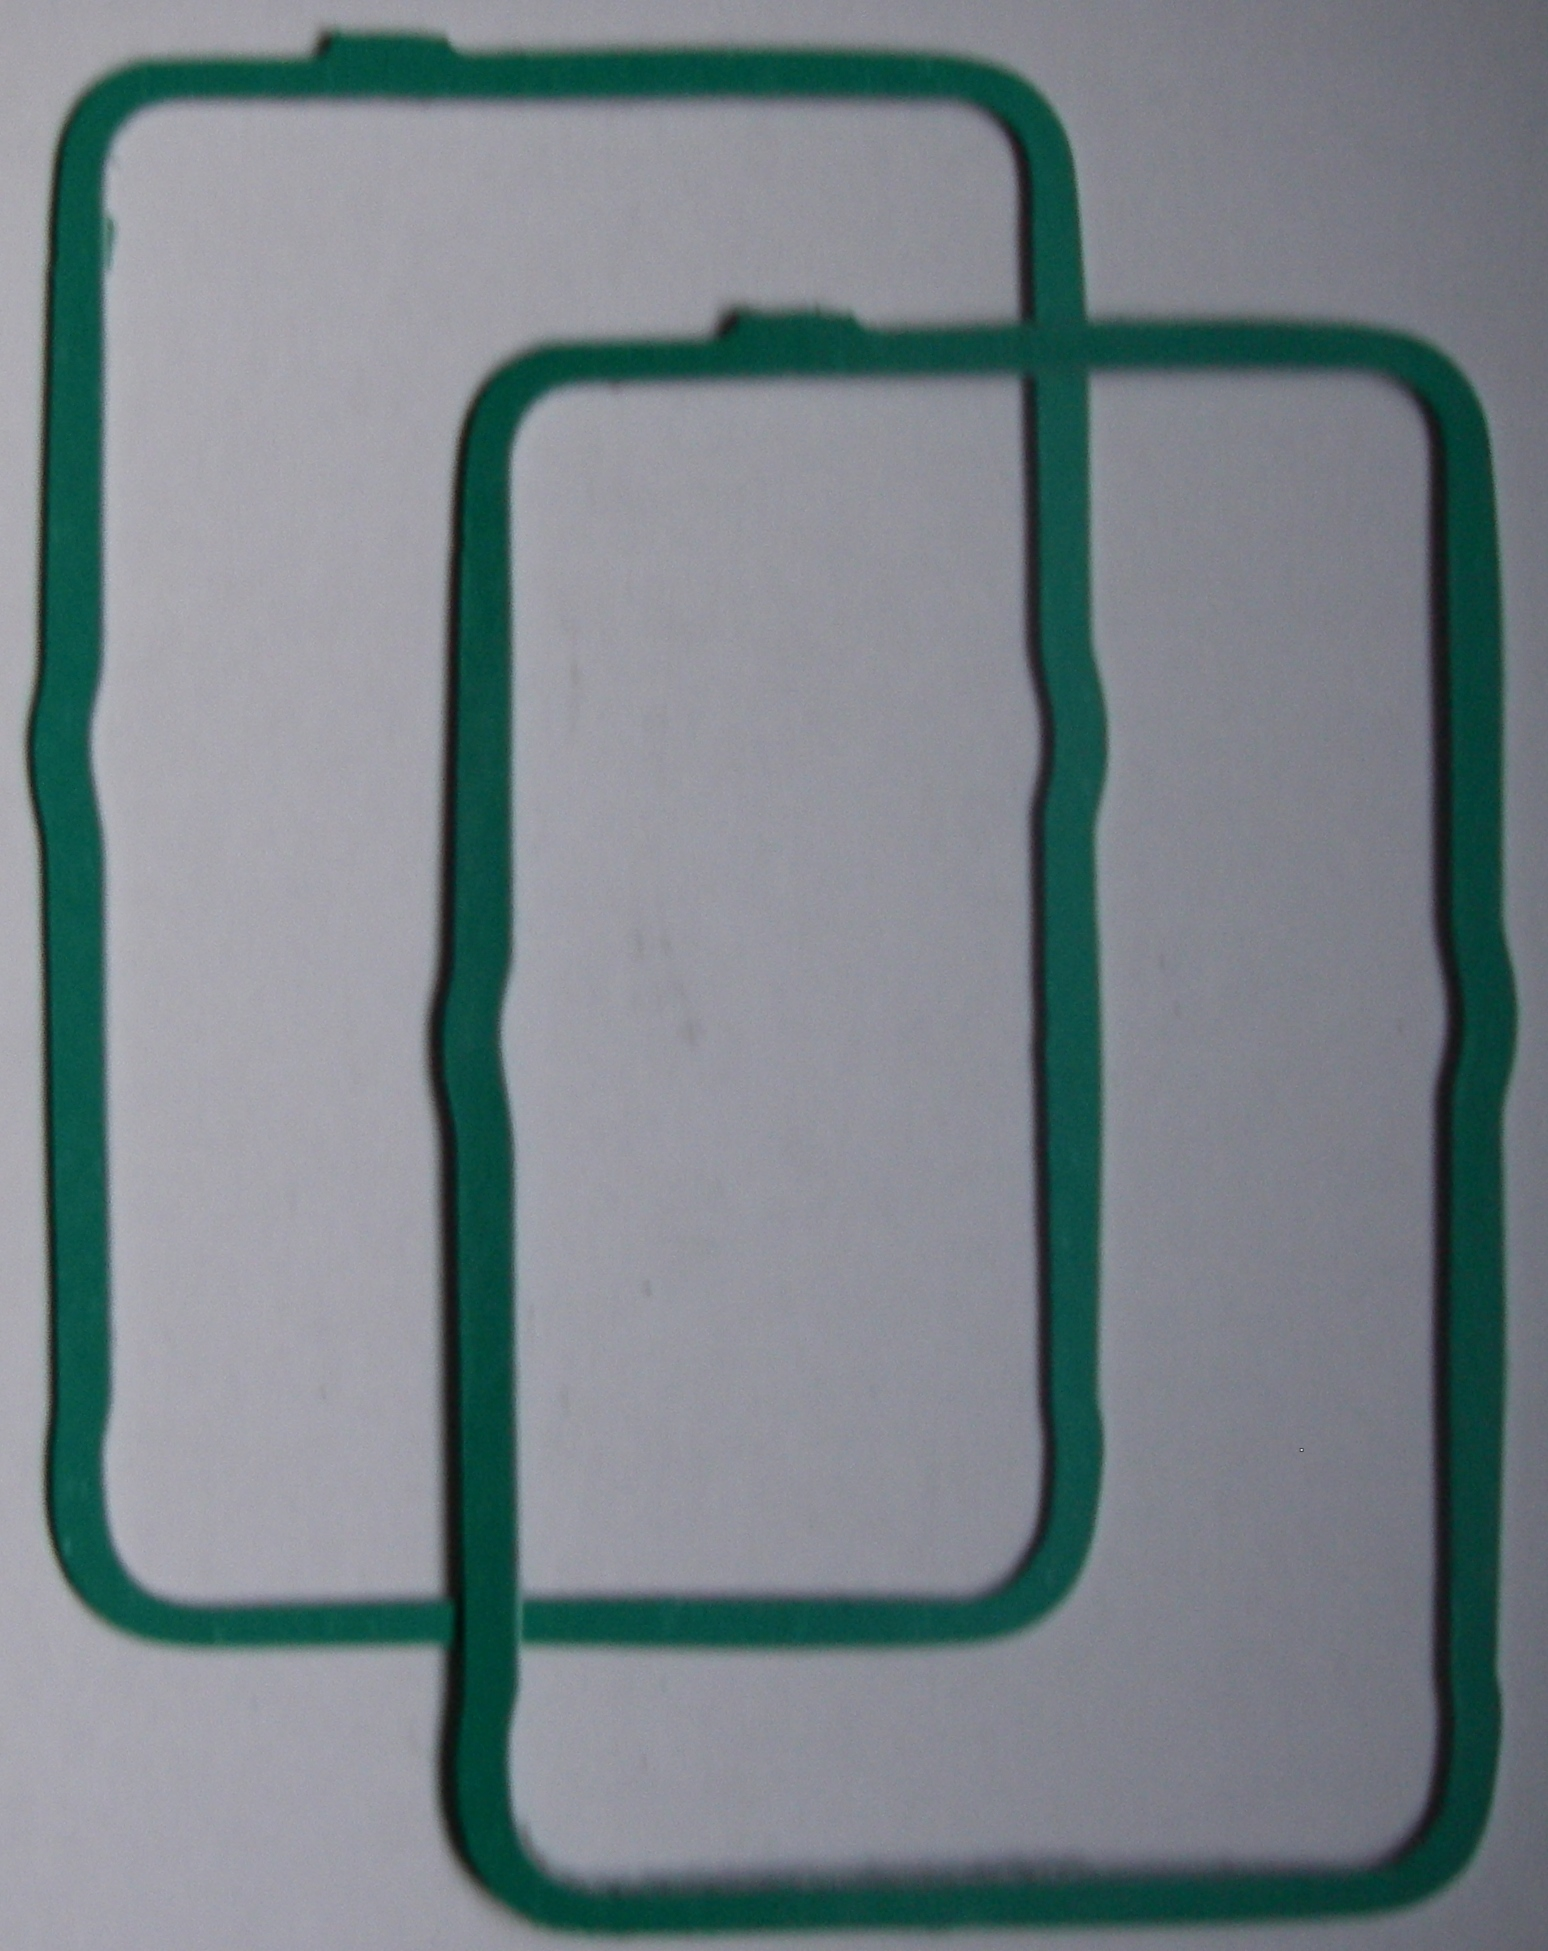 Lister <b>SL2</b> Rocker Cover Gasket  :<b><font color=&quot;#FF0000&quot;> United Kingdom Delivery Only</b></br>